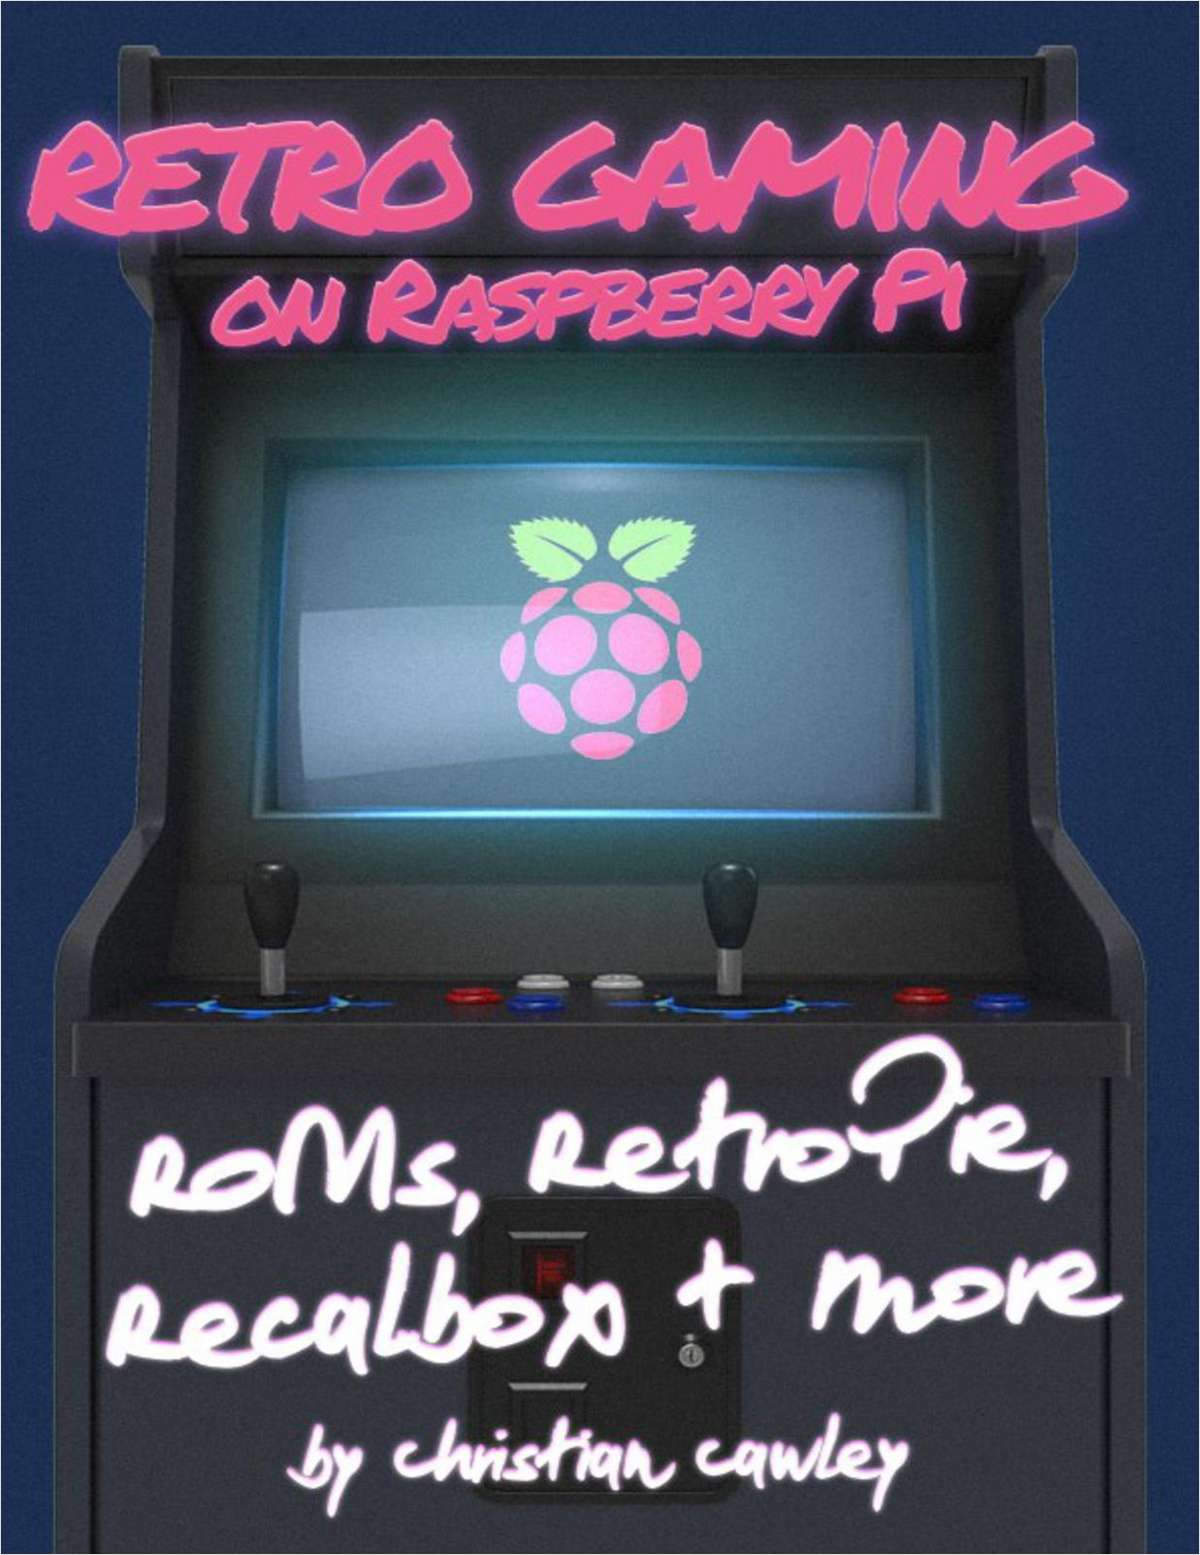 Retro Gaming on Raspberry Pi Screenshot